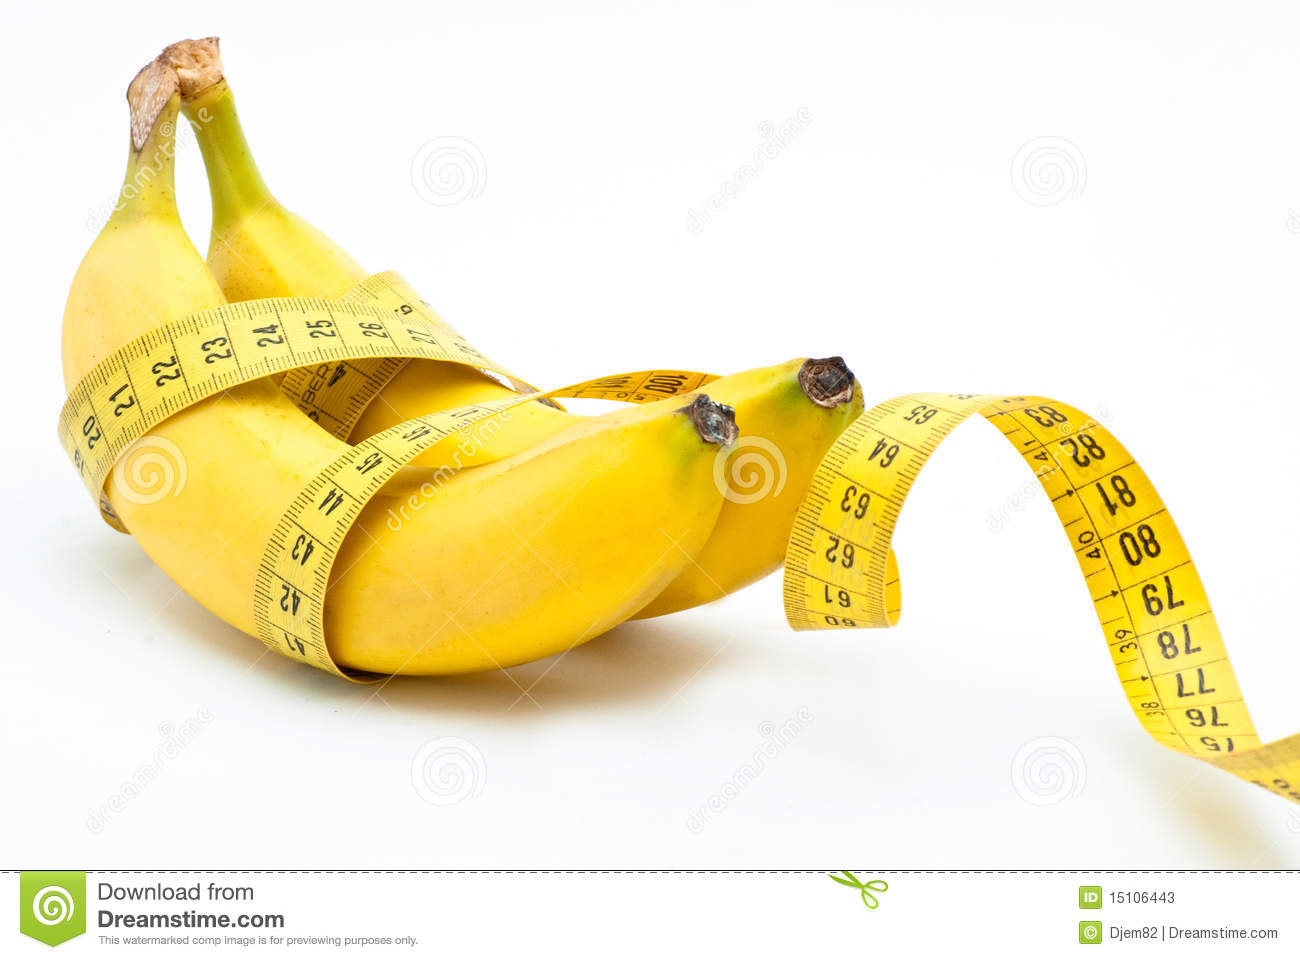 My Surprising Results On The Banana Diet